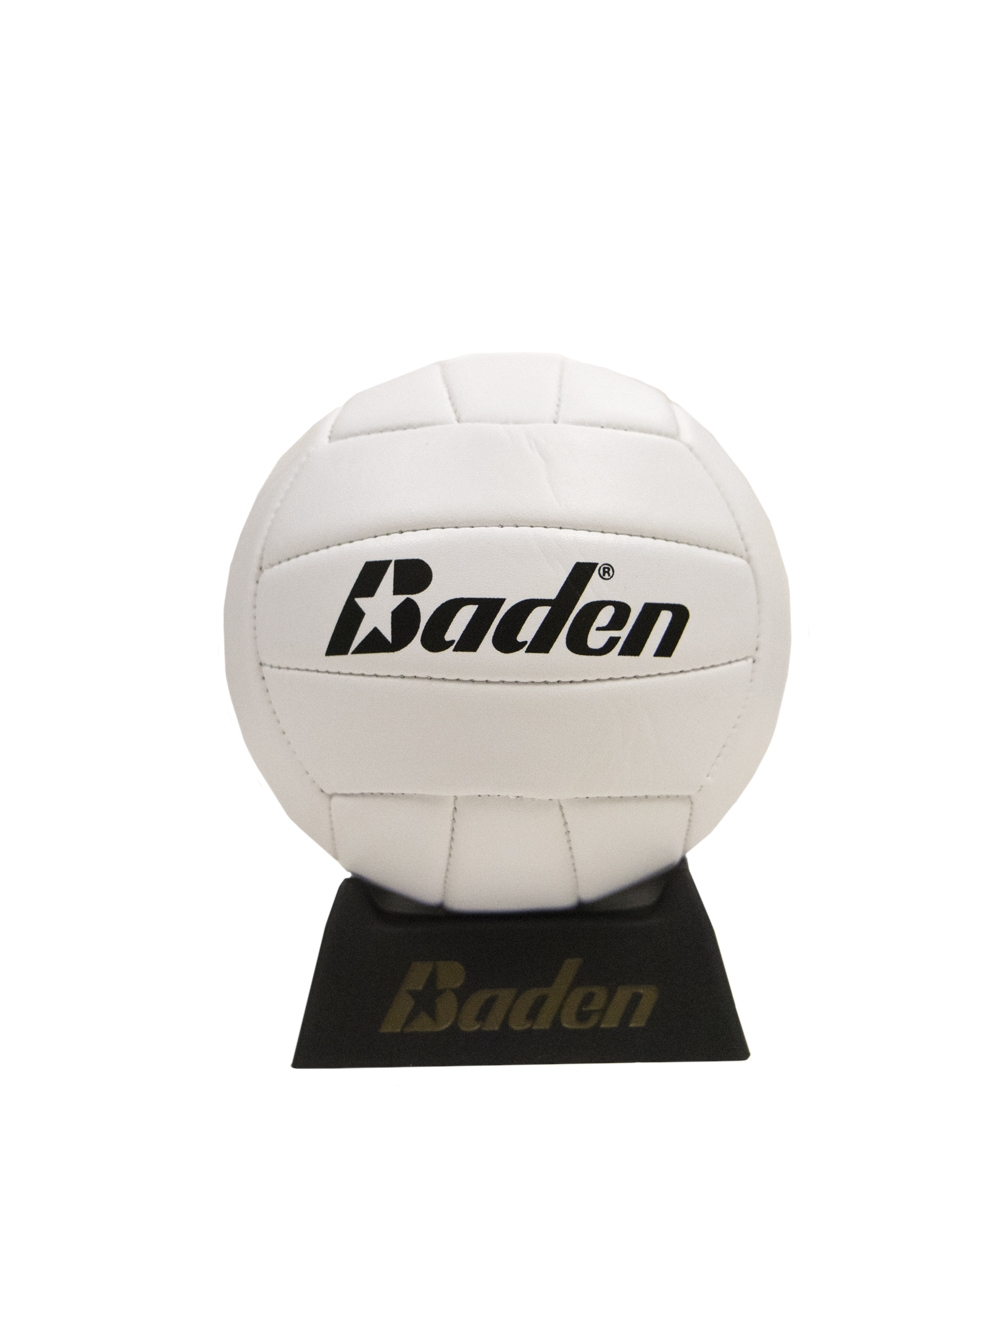 Baden Autograph Volleyball Midwest Volleyball Warehouse